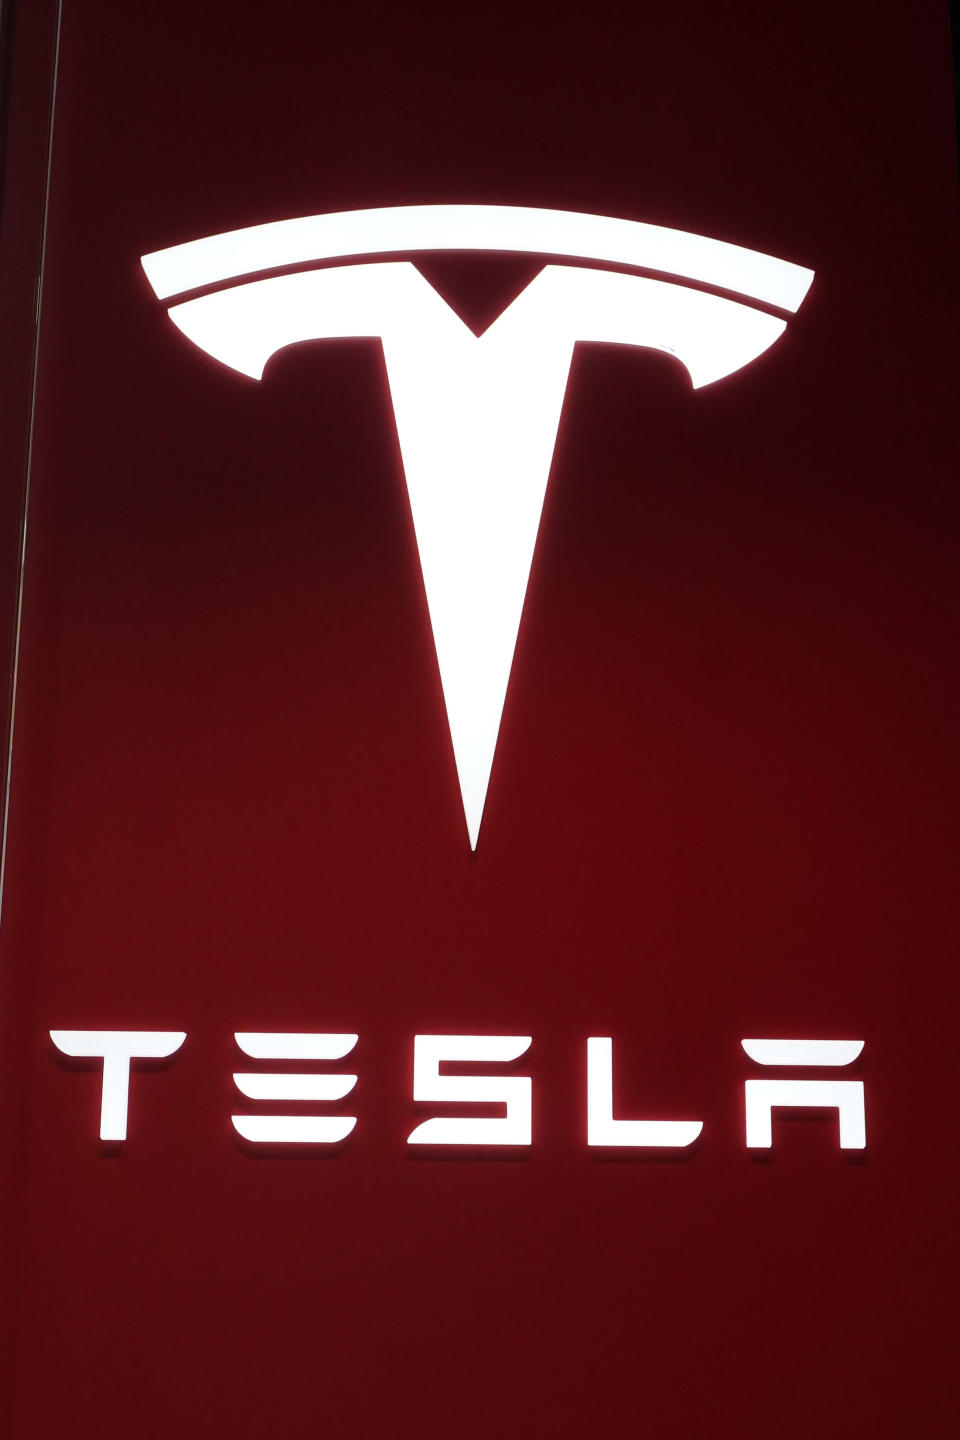 The Tesla logo is displayed at the Tesla Gallery on Feb. 24, 2021, in Troy, Mich. Opinion polls show that most Americans would consider an EV if it cost less, if more charging stations existed and if a wider variety of models were available. The models are coming, but they may roll out ahead of consumer tastes. And that could spell problems for the U.S. auto industry, which is sinking billions into the new technology with dozens of new vehicles on the way. (AP Photo/Carlos Osorio)